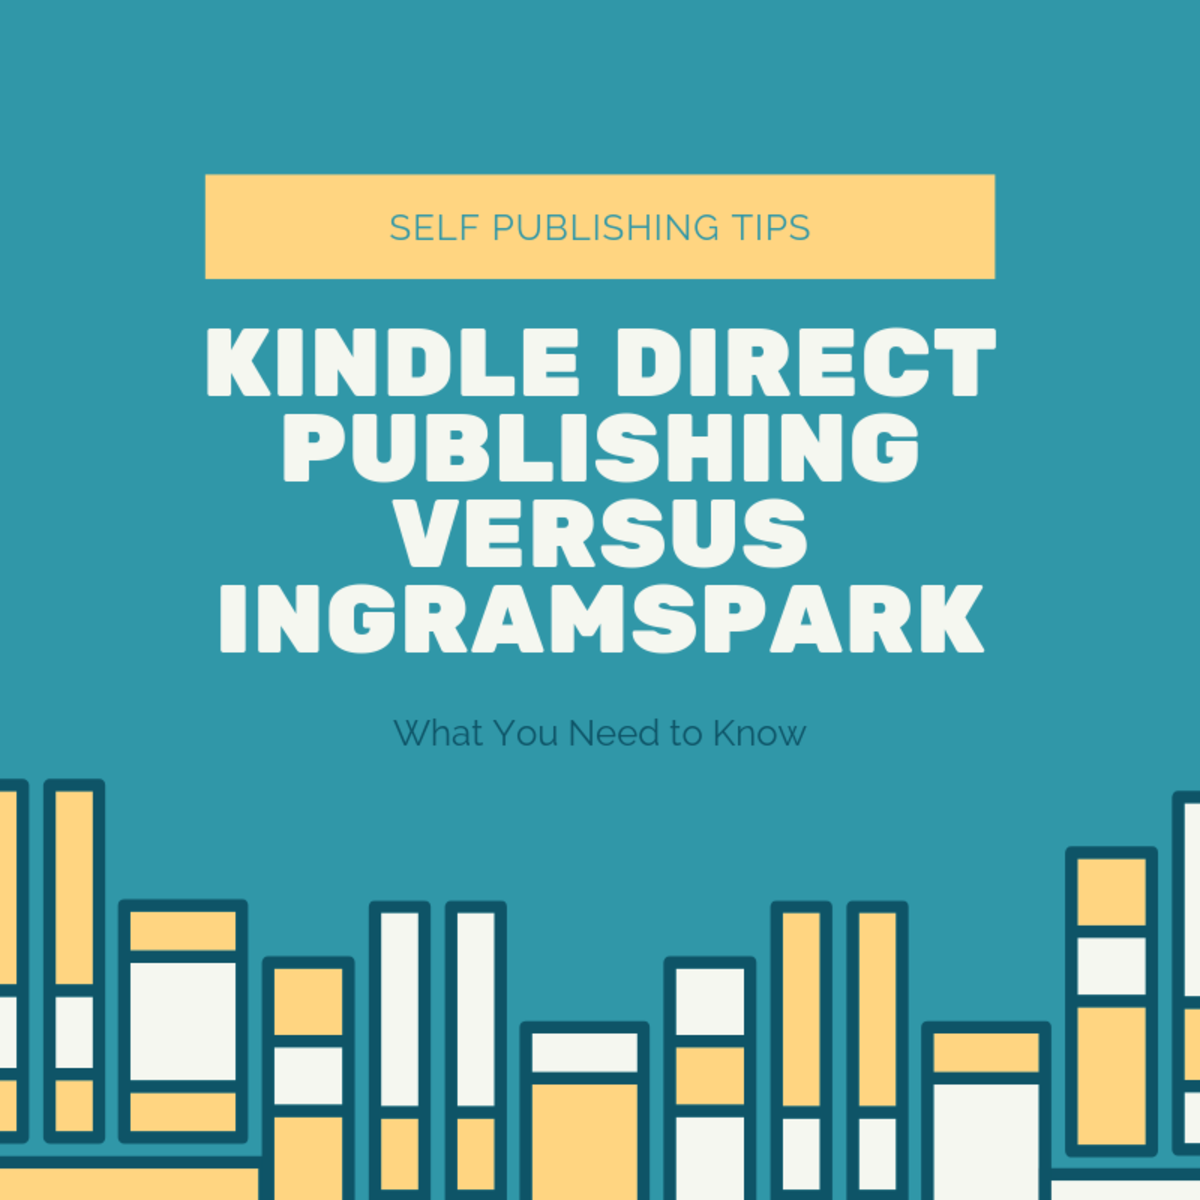 Kindle Direct Publishing Versus Ingramspark: What You Need to Know